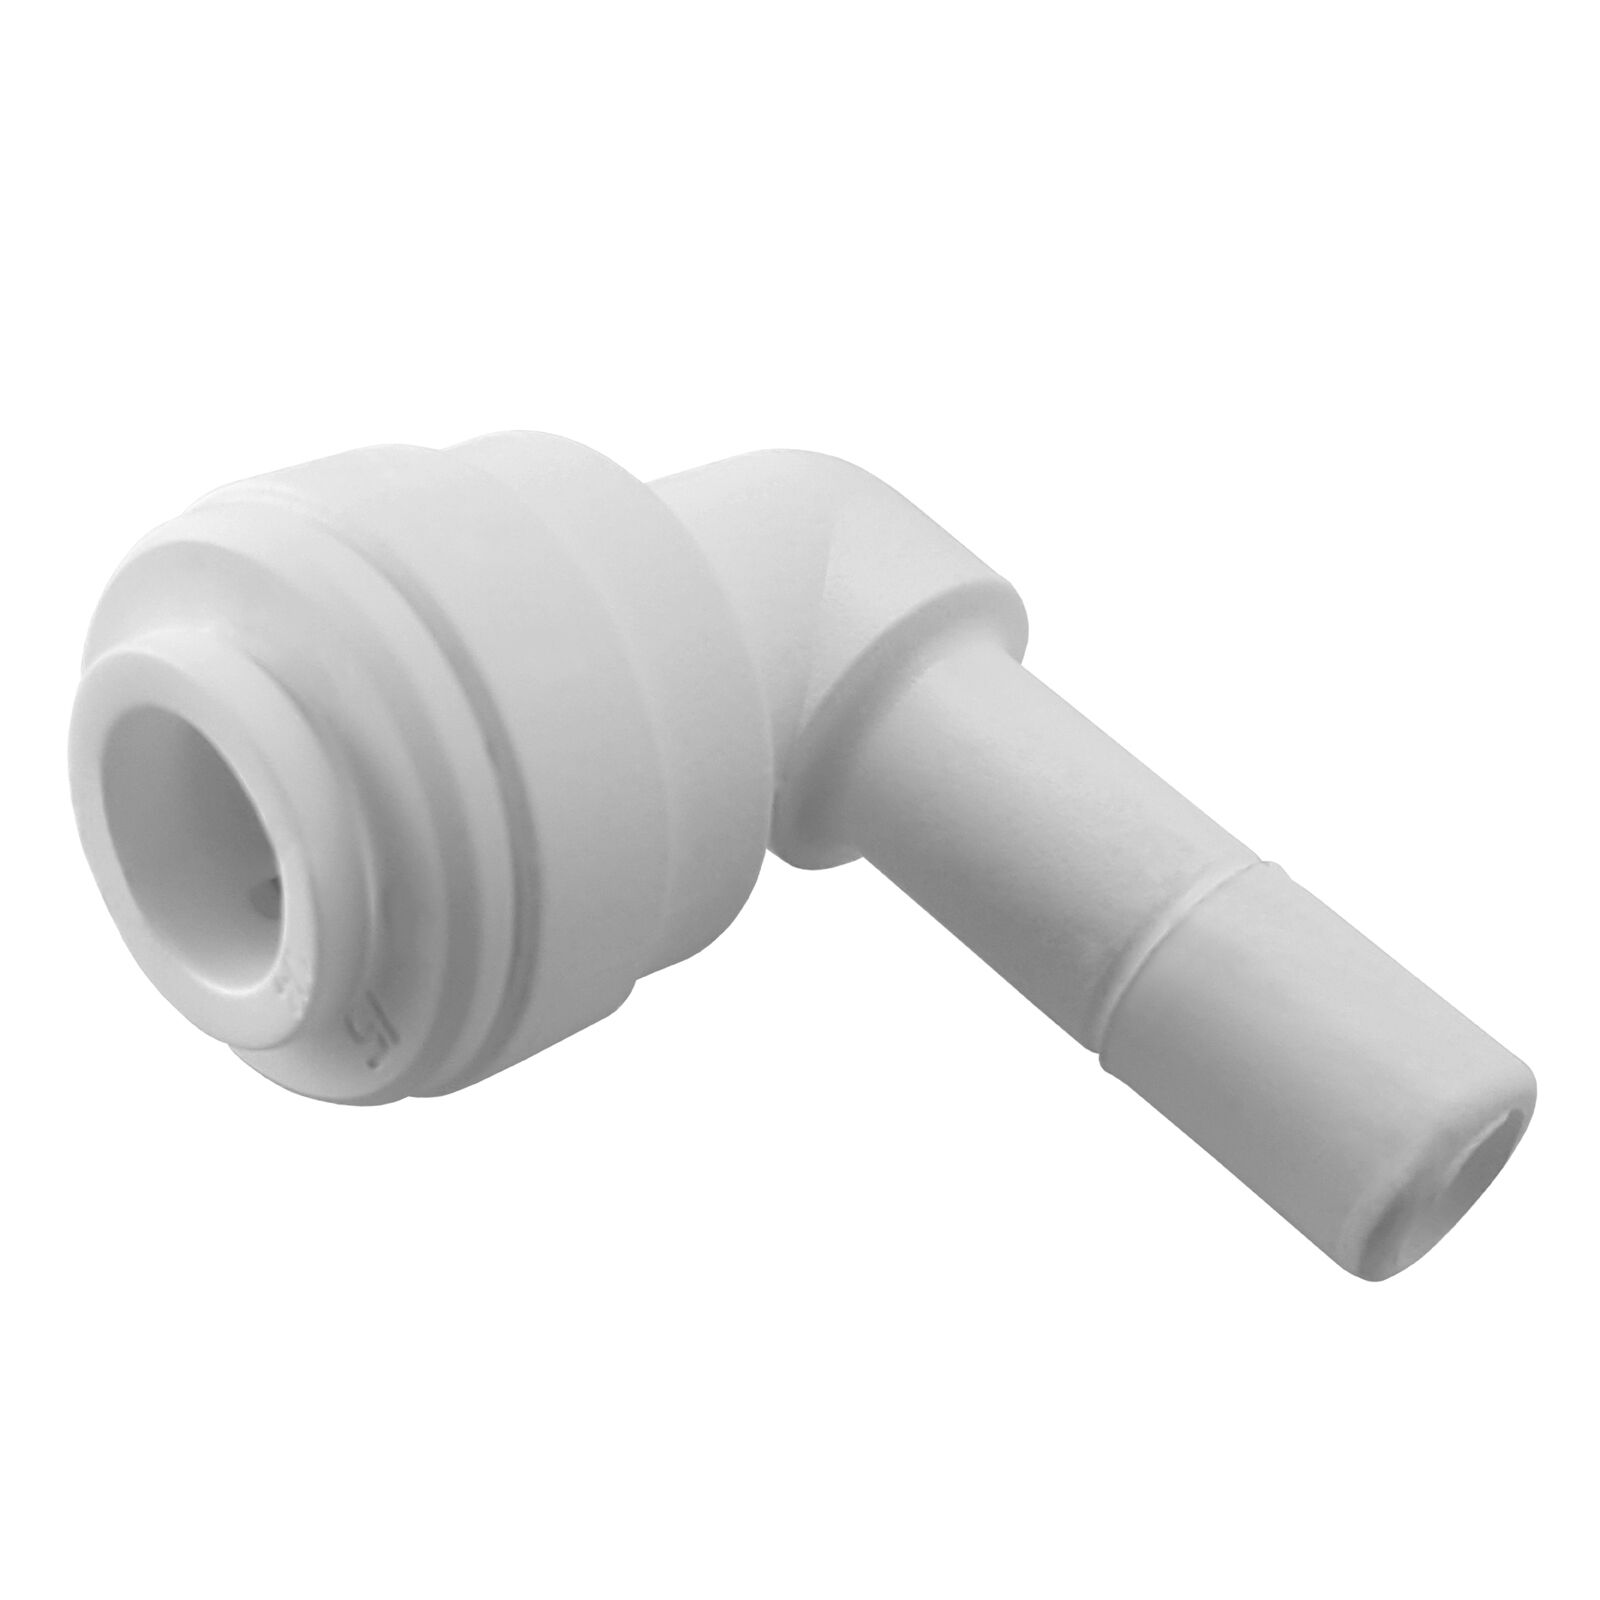 Express Water Stem Elbow 1 4  Fitting Connection Parts Water Filters   RO System